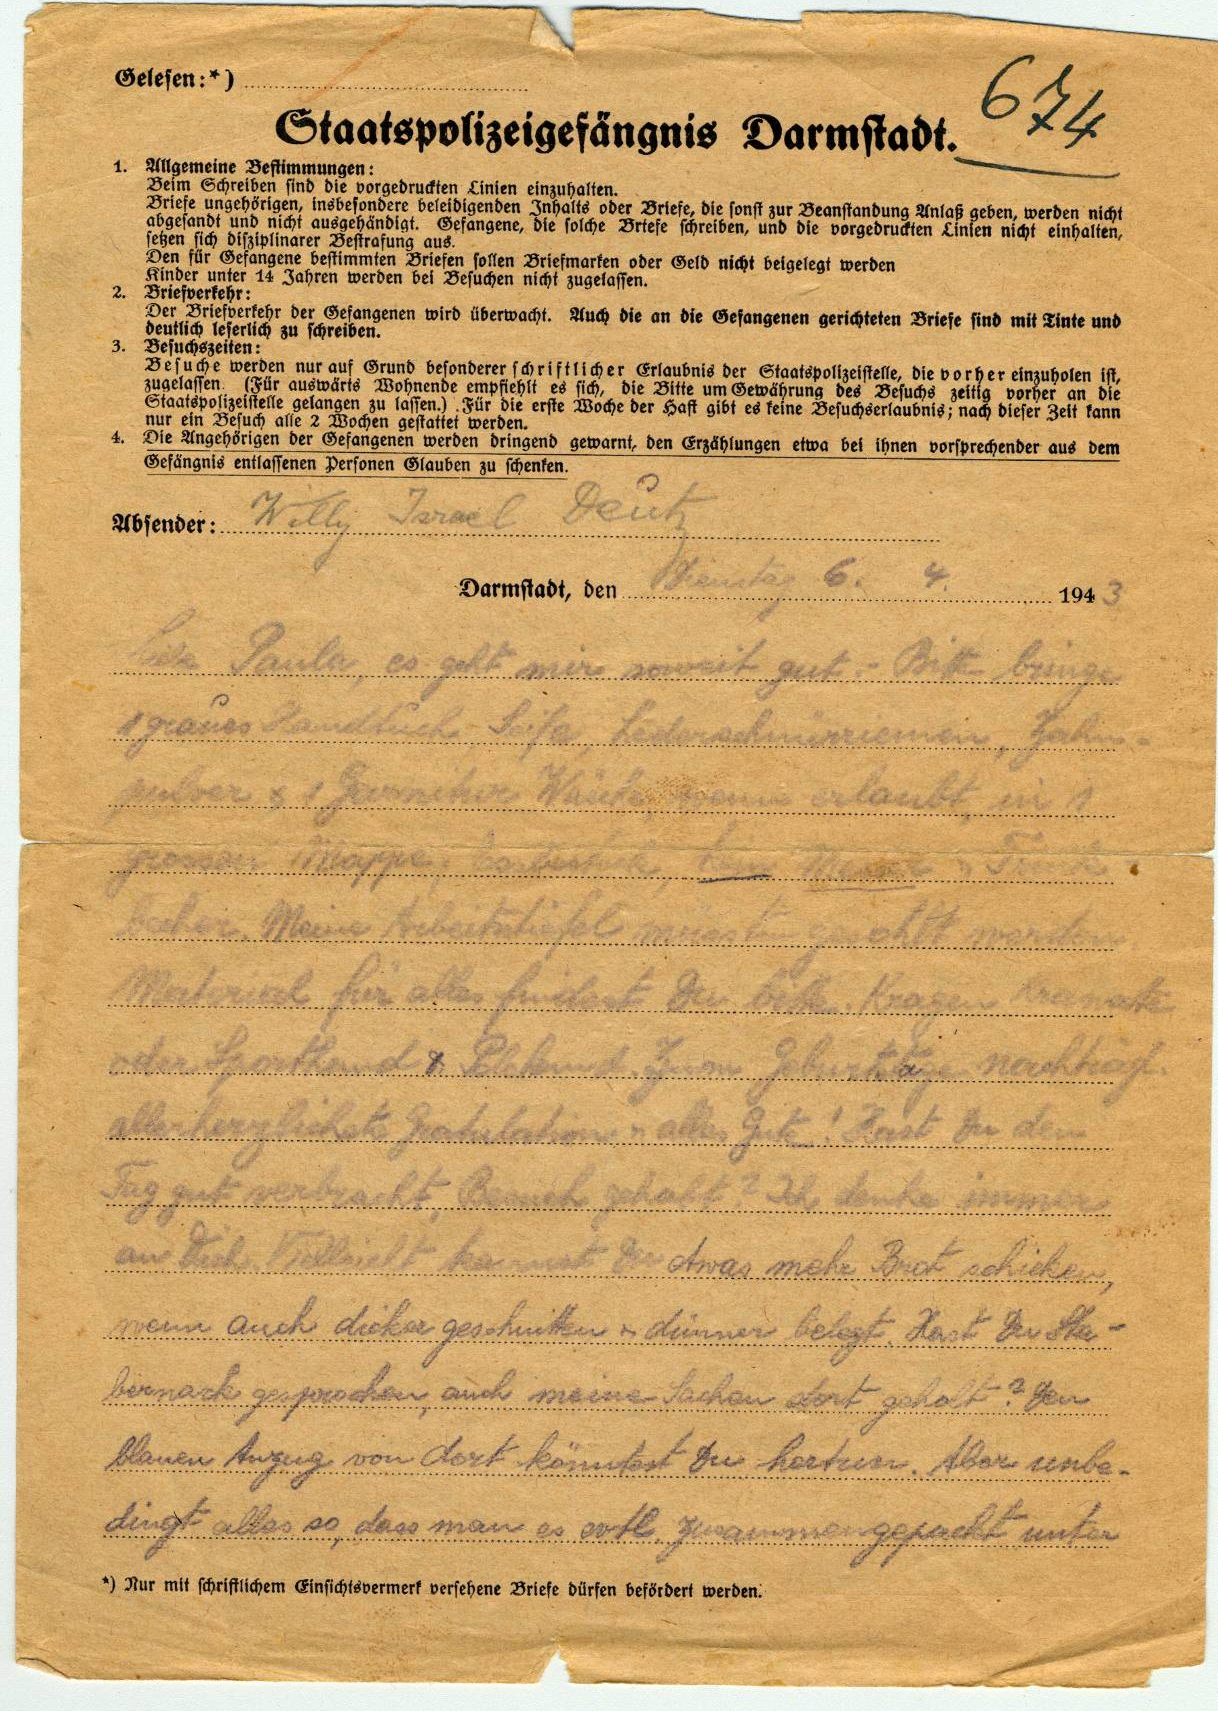 Letter from Willy Deutz, State Police jail, Darmstadt, Germany, April 6, 1943.